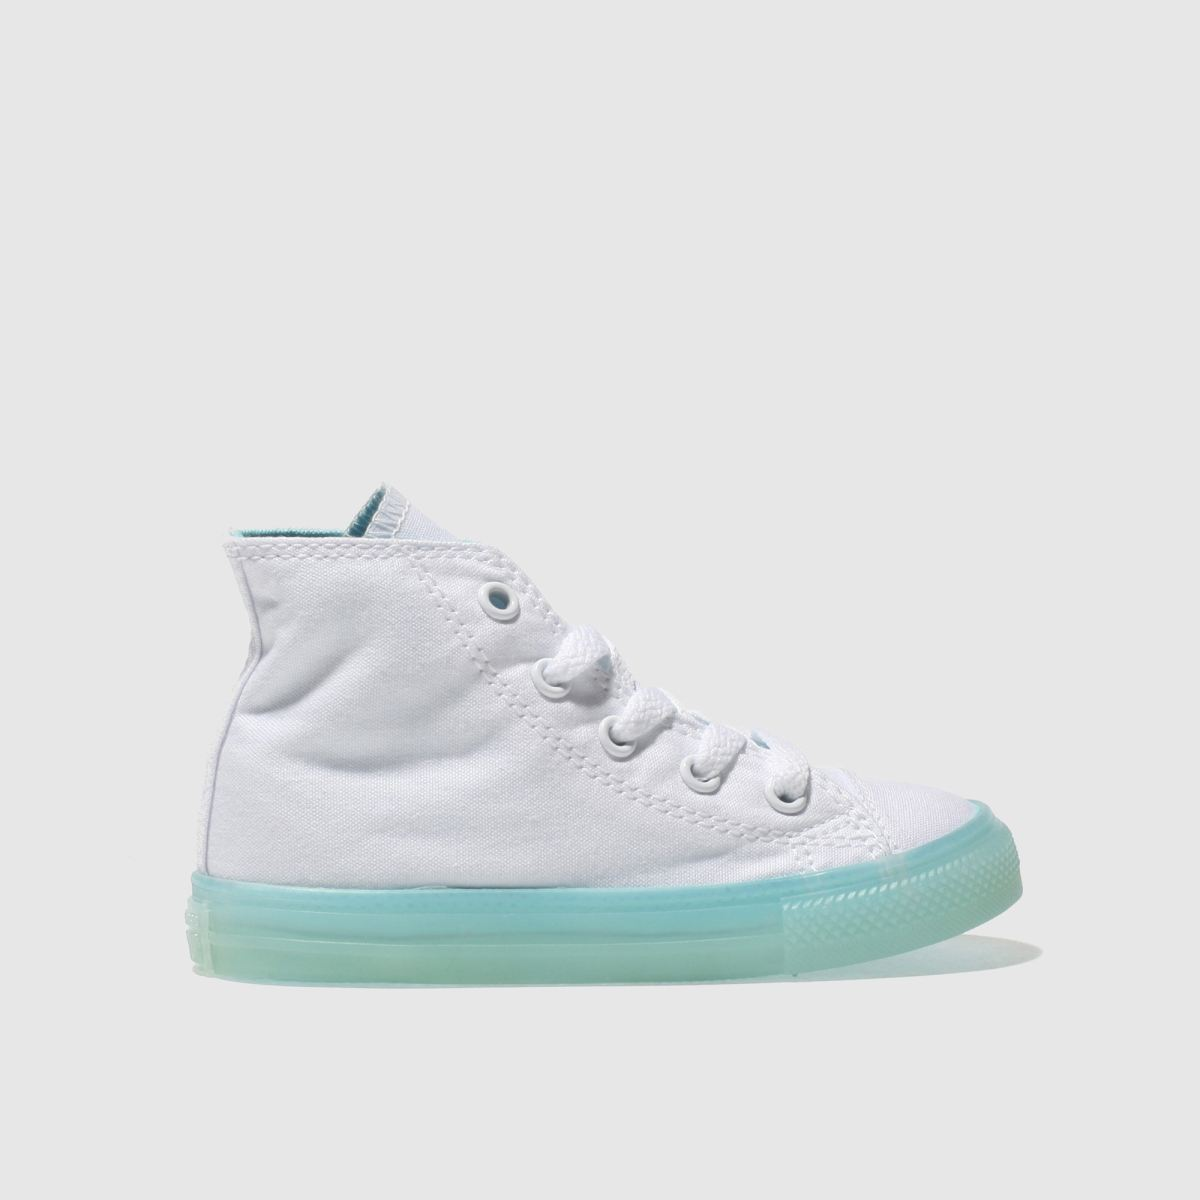 Converse White & Pl Blue Chuck Taylor All Star Hi Girls Toddler Trainers